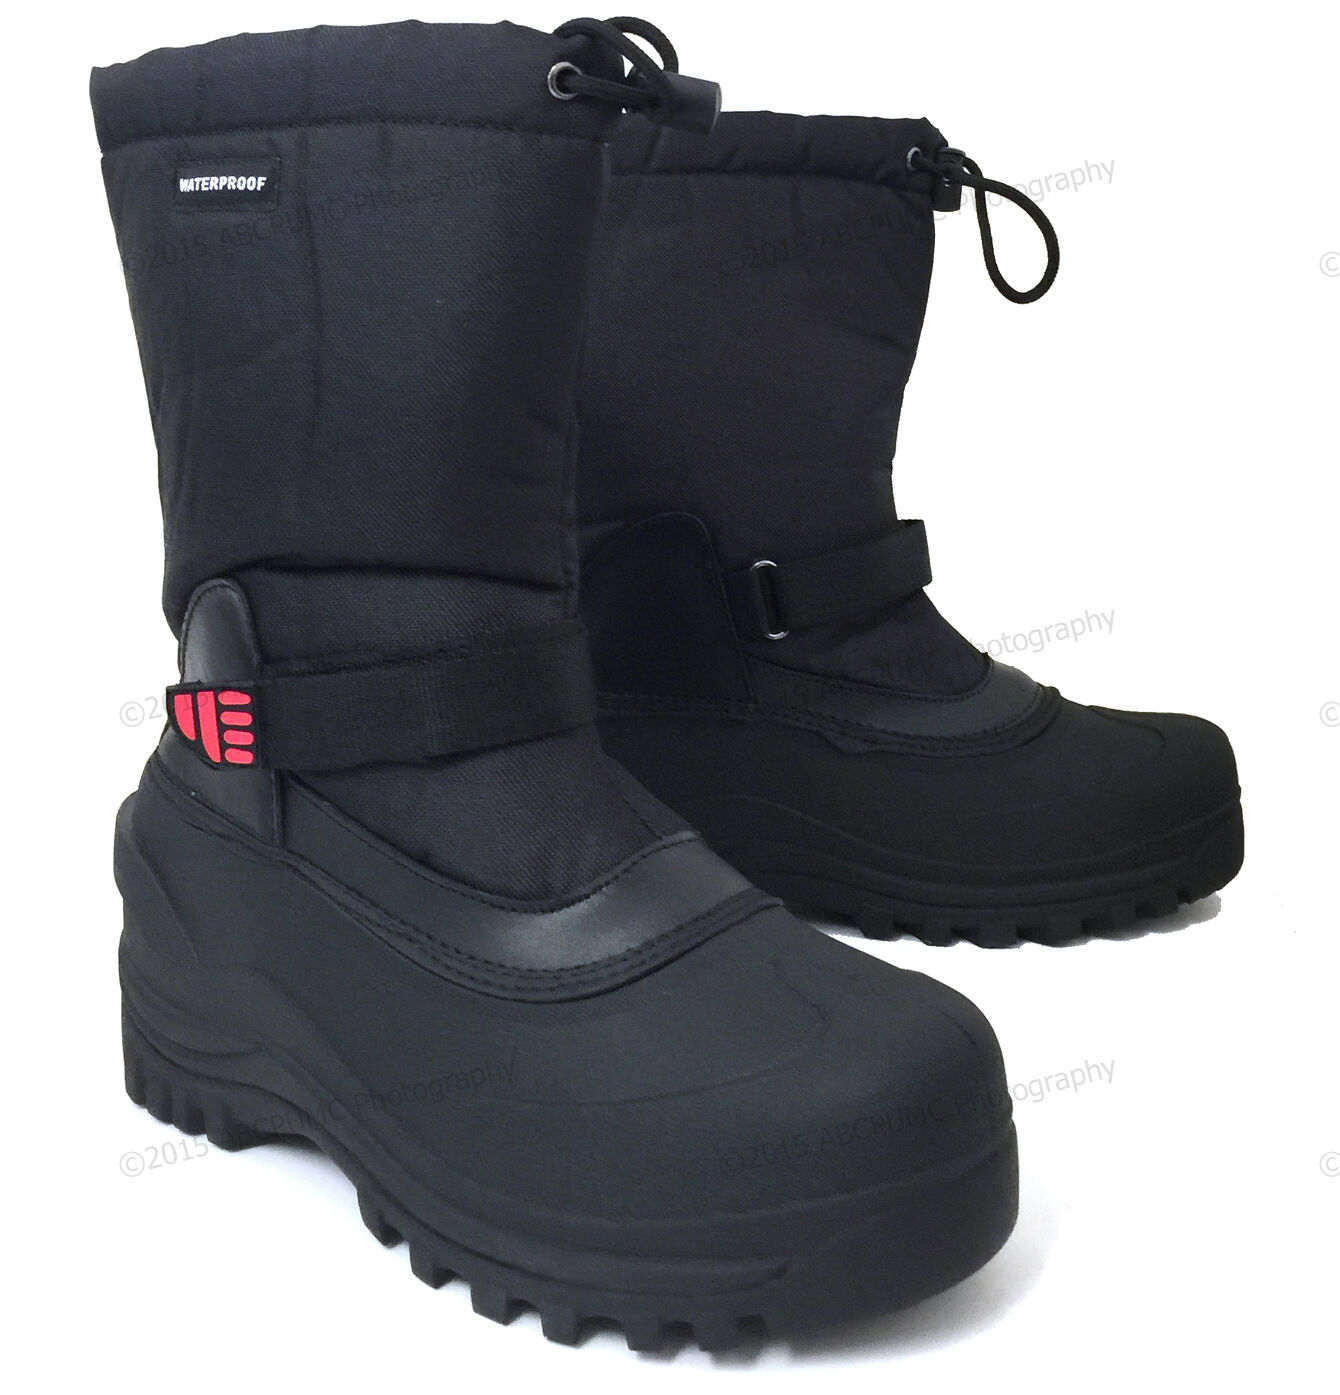 Brand New Mens Winter Boots Nylon Insulated Waterproof Therm